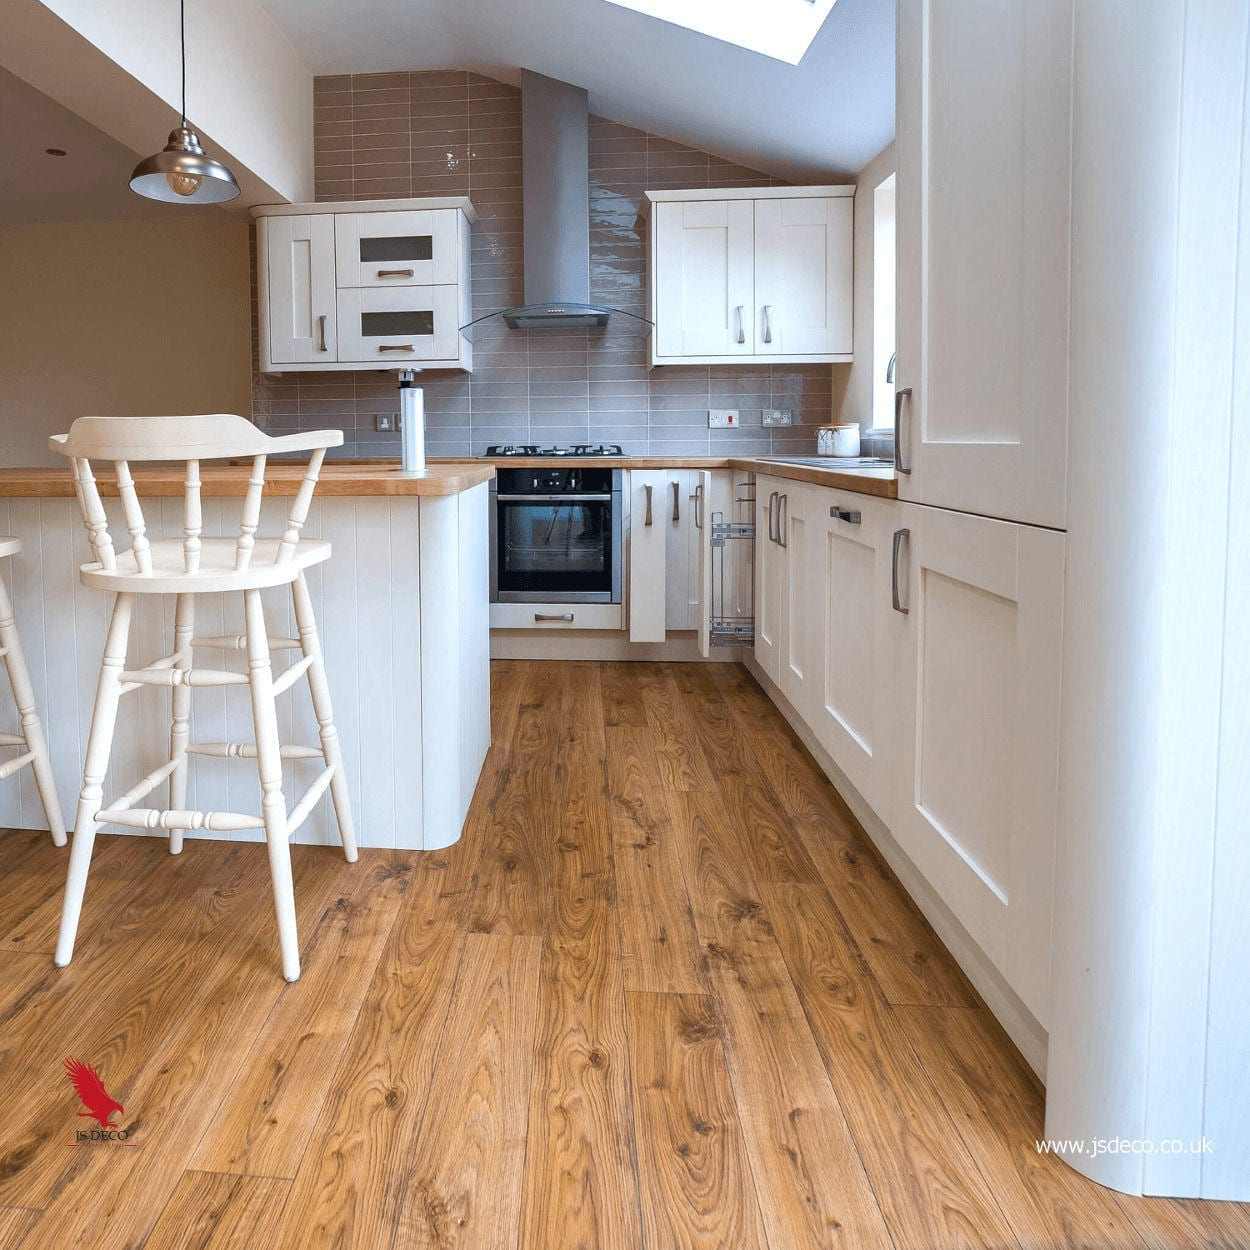 Country style fitted kitchen firniture, Pudsey, Leeds